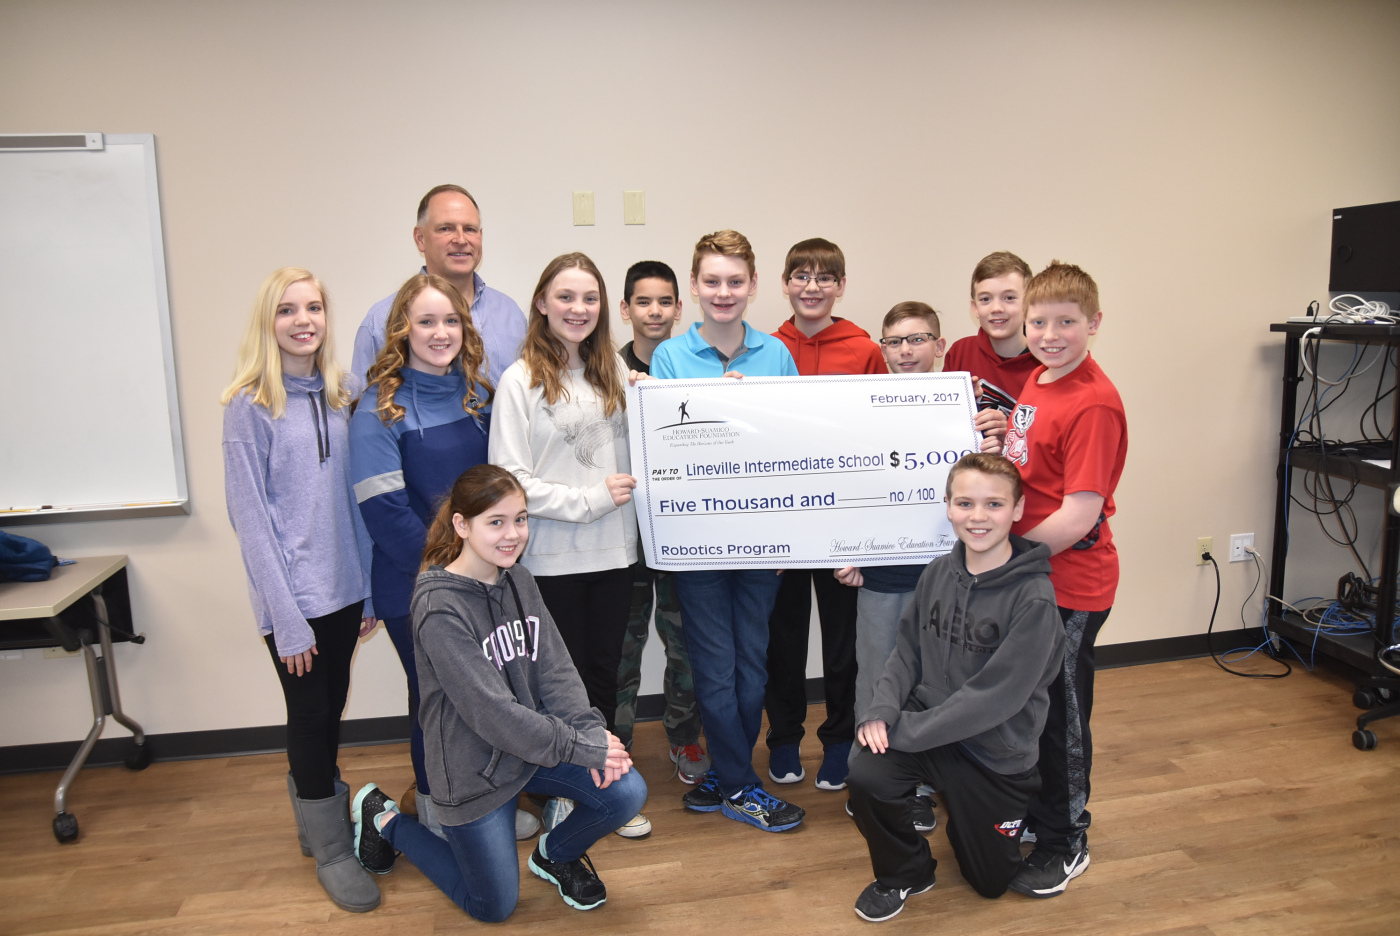 HSEF Grant to Support Robotics Program at Lineville – NBC 26 Partners in Education Report